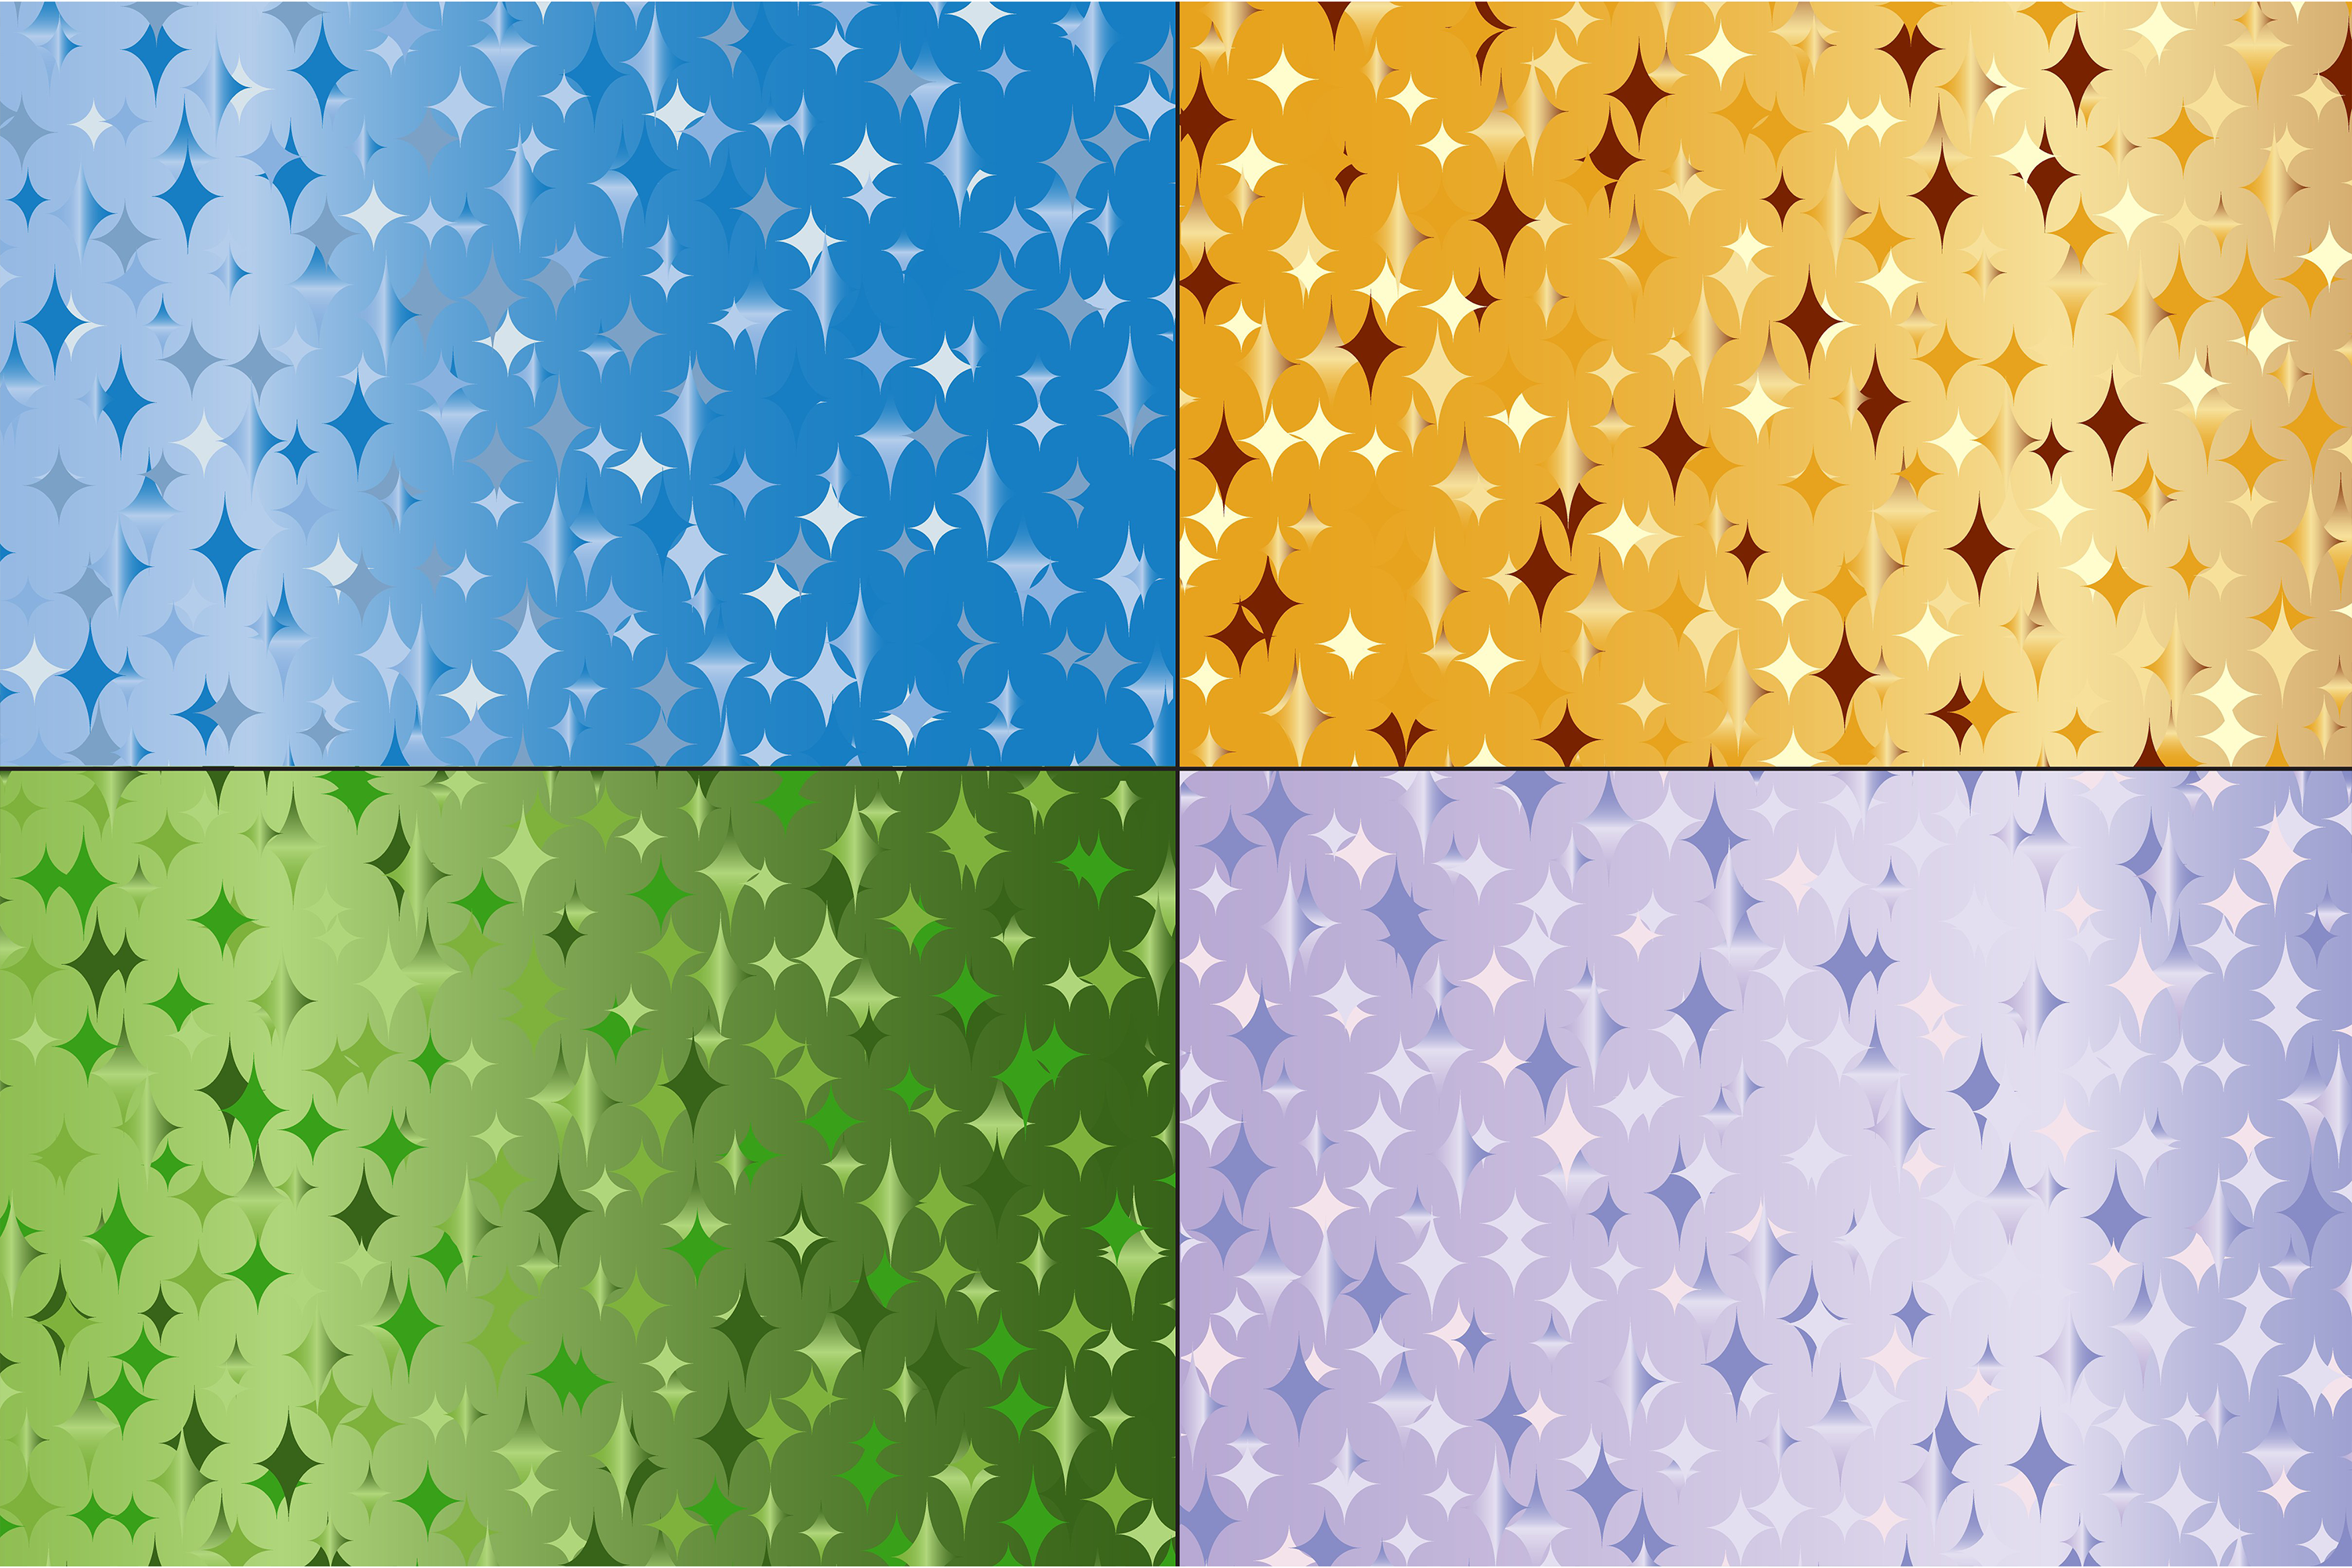 Sparkle Gradient Backgrounds example image 3